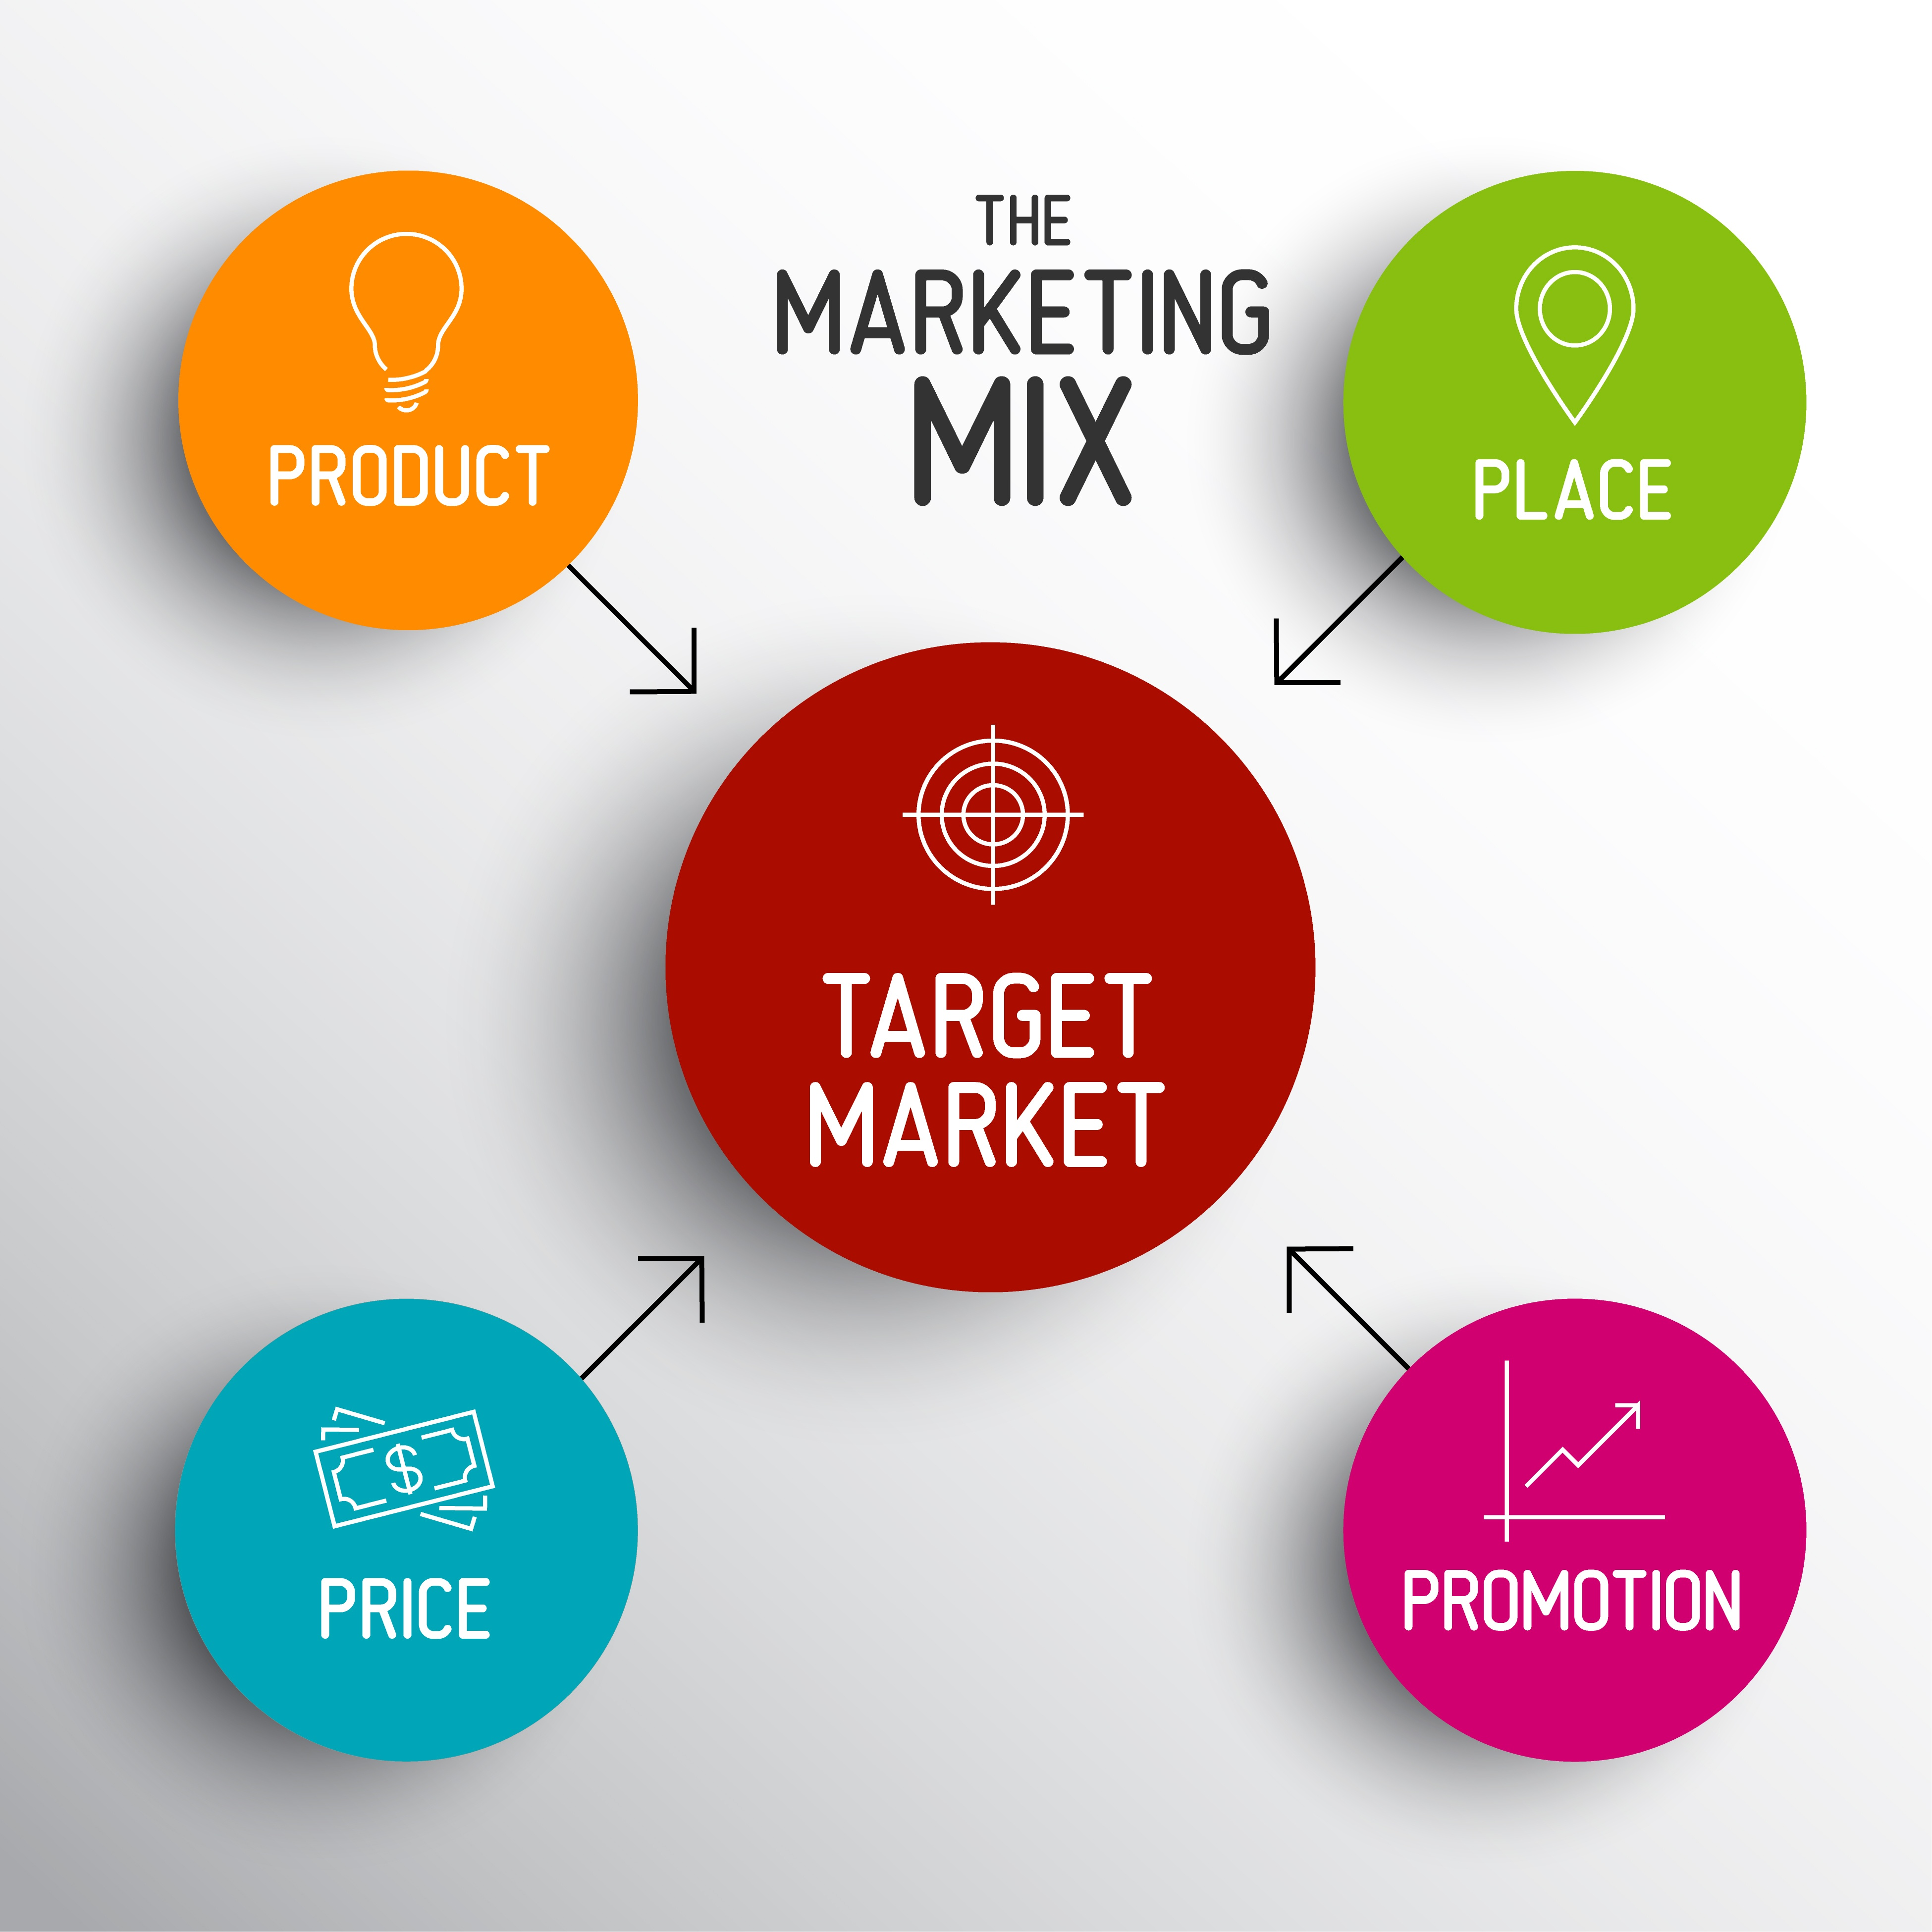 Category: Target Marketing, Positioning, Segmentation